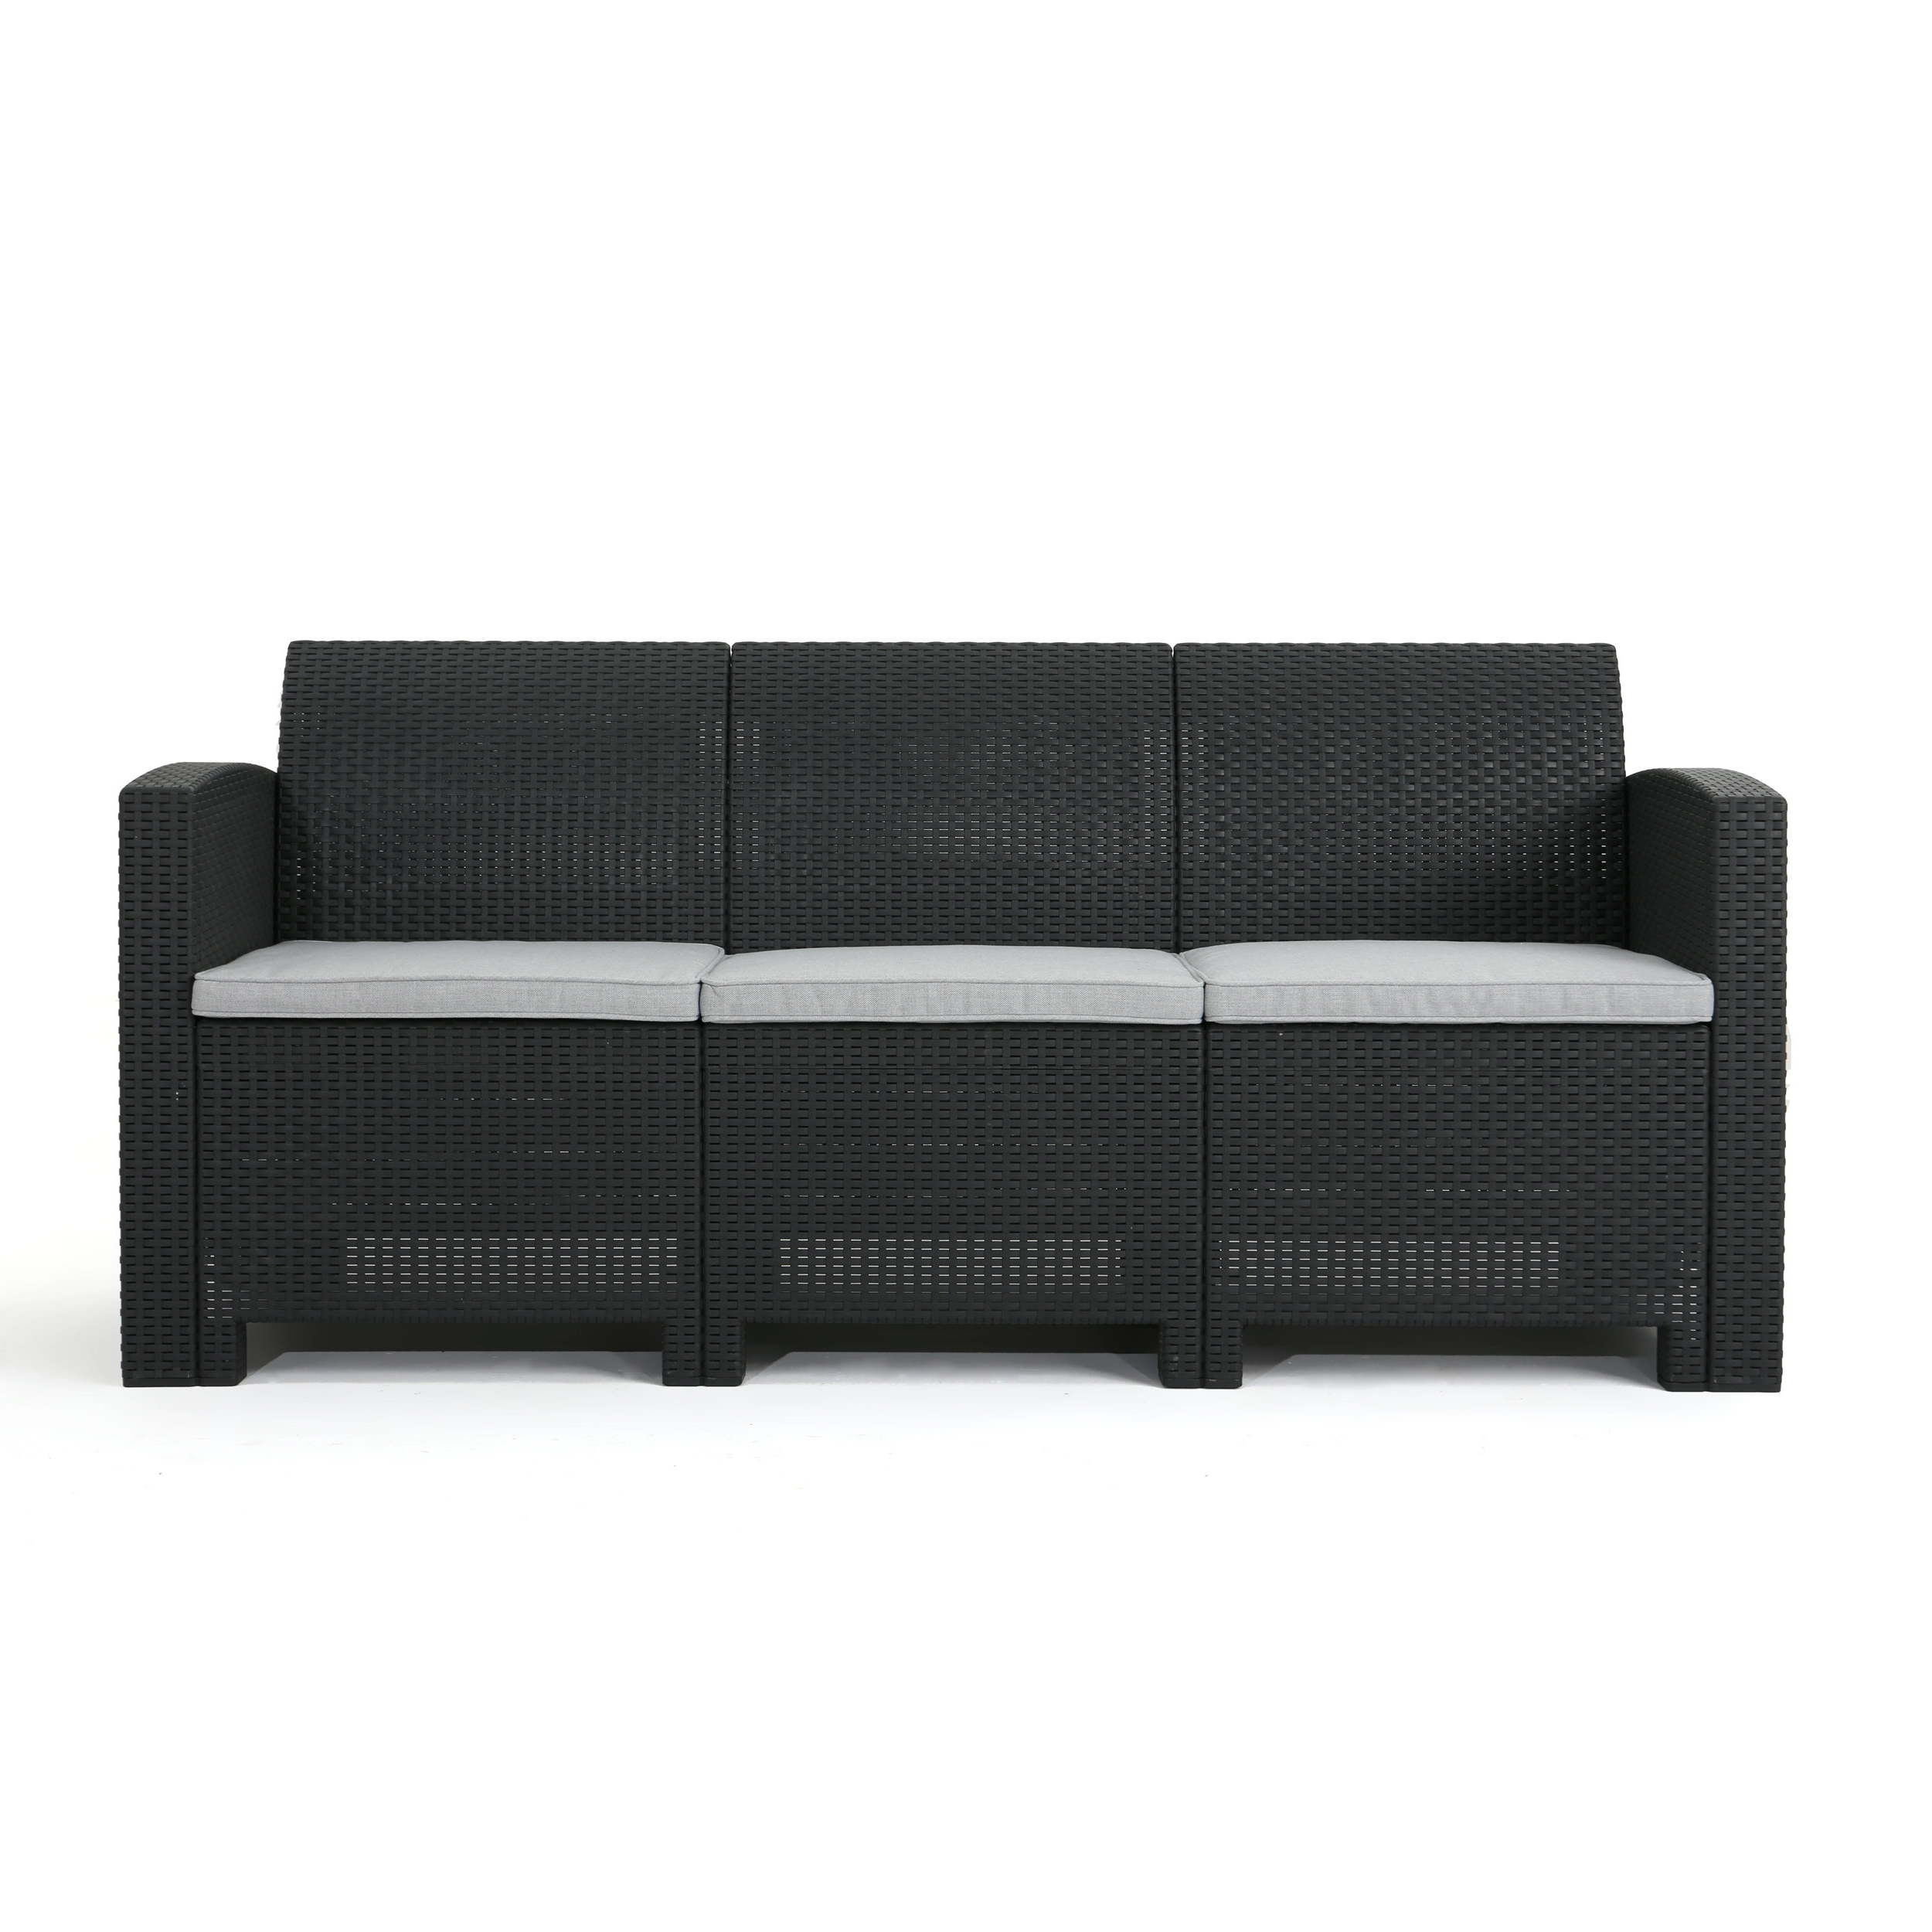 Newest Stockwell Patio Sofas With Cushions In Yoselin Patio Sofa With Cushions (View 10 of 20)